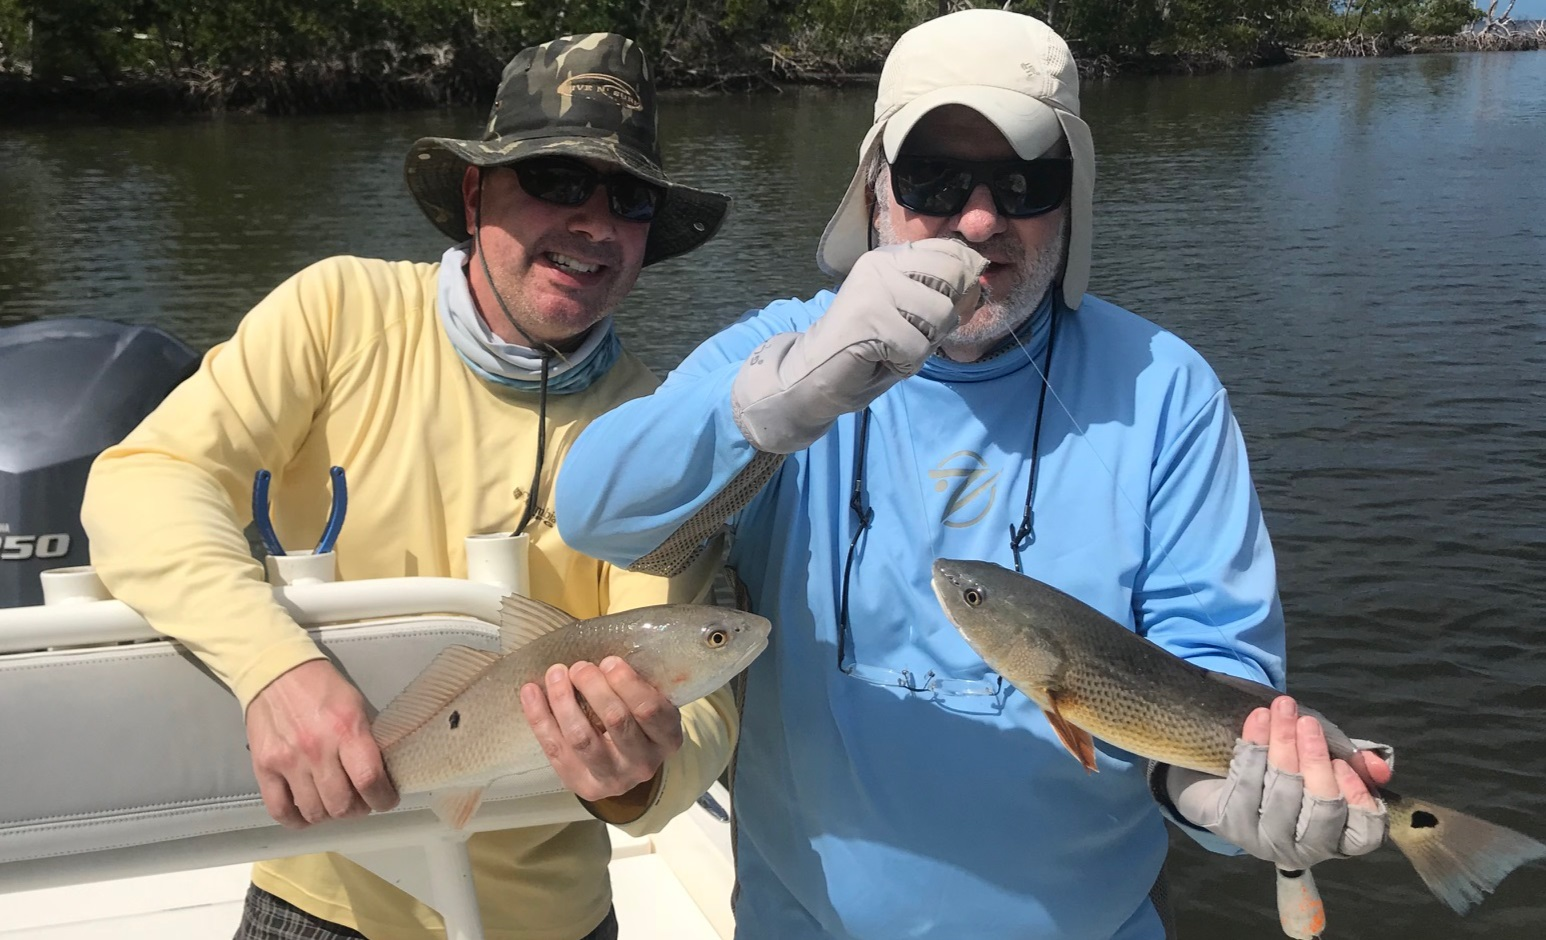 Jack and Keith Hubacher of the Beach Boys. The had somewhere around 80 Snook and Redfish combined!